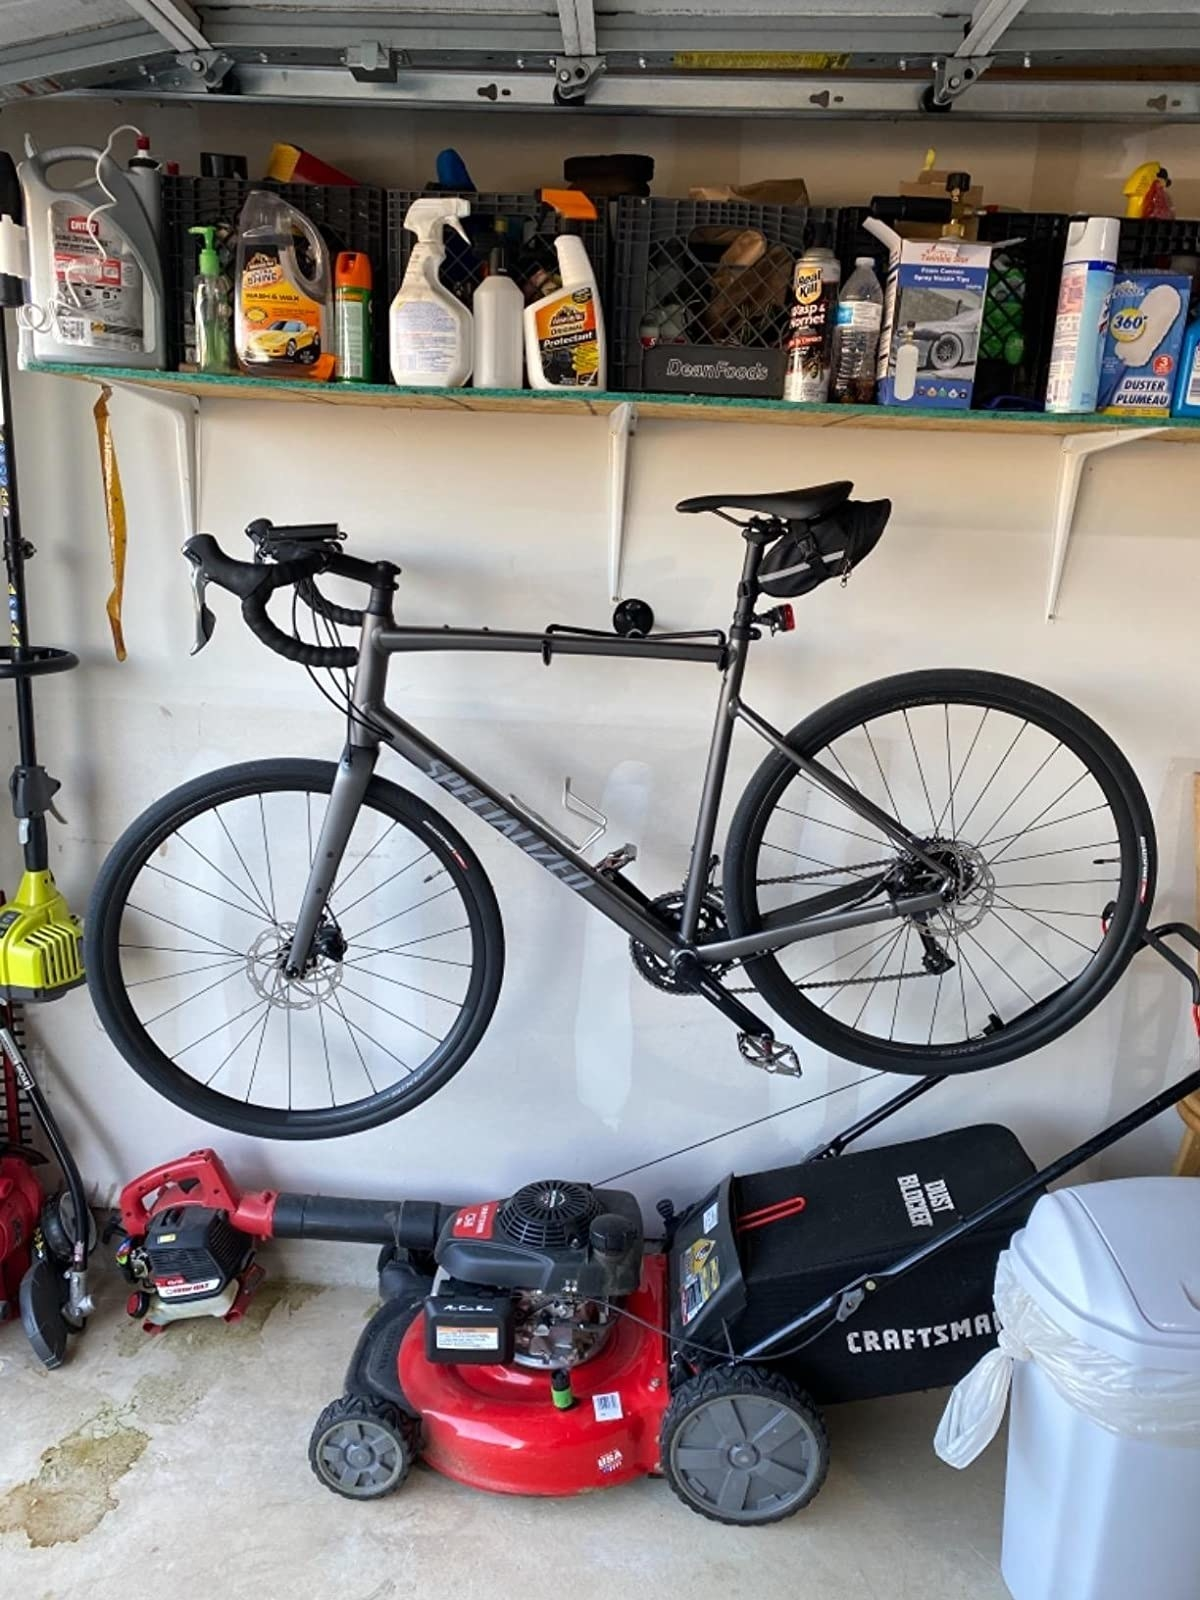 A reviewer's photo of their bike hanging from the mount in their garage